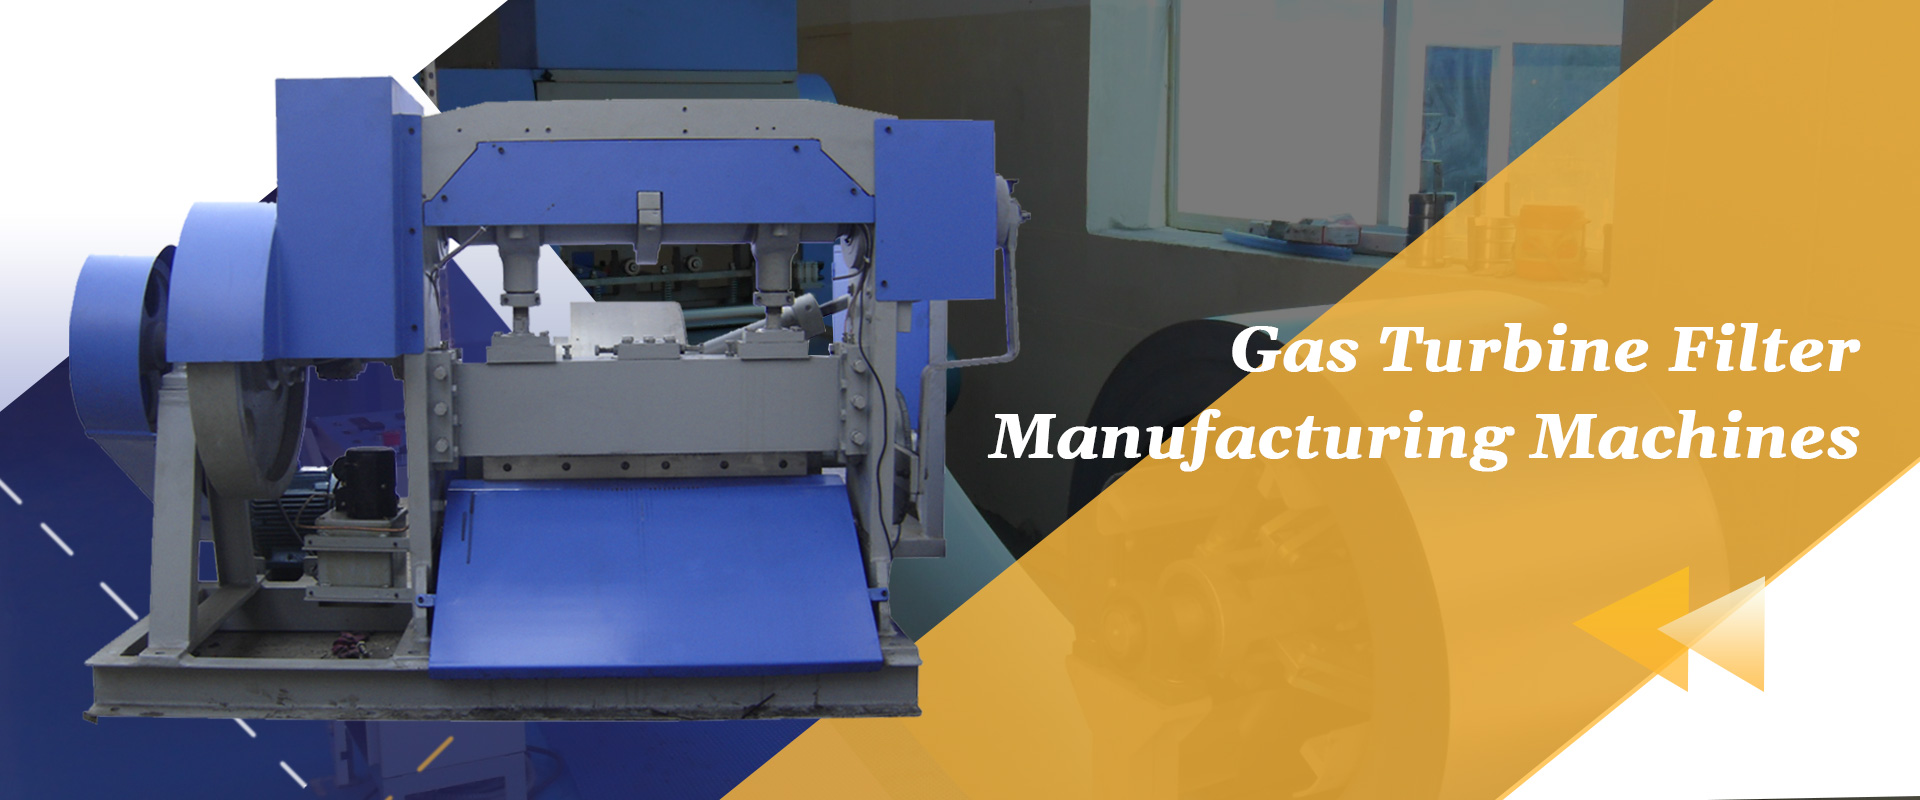 Gas Turbine Filter Manufacturing Machines